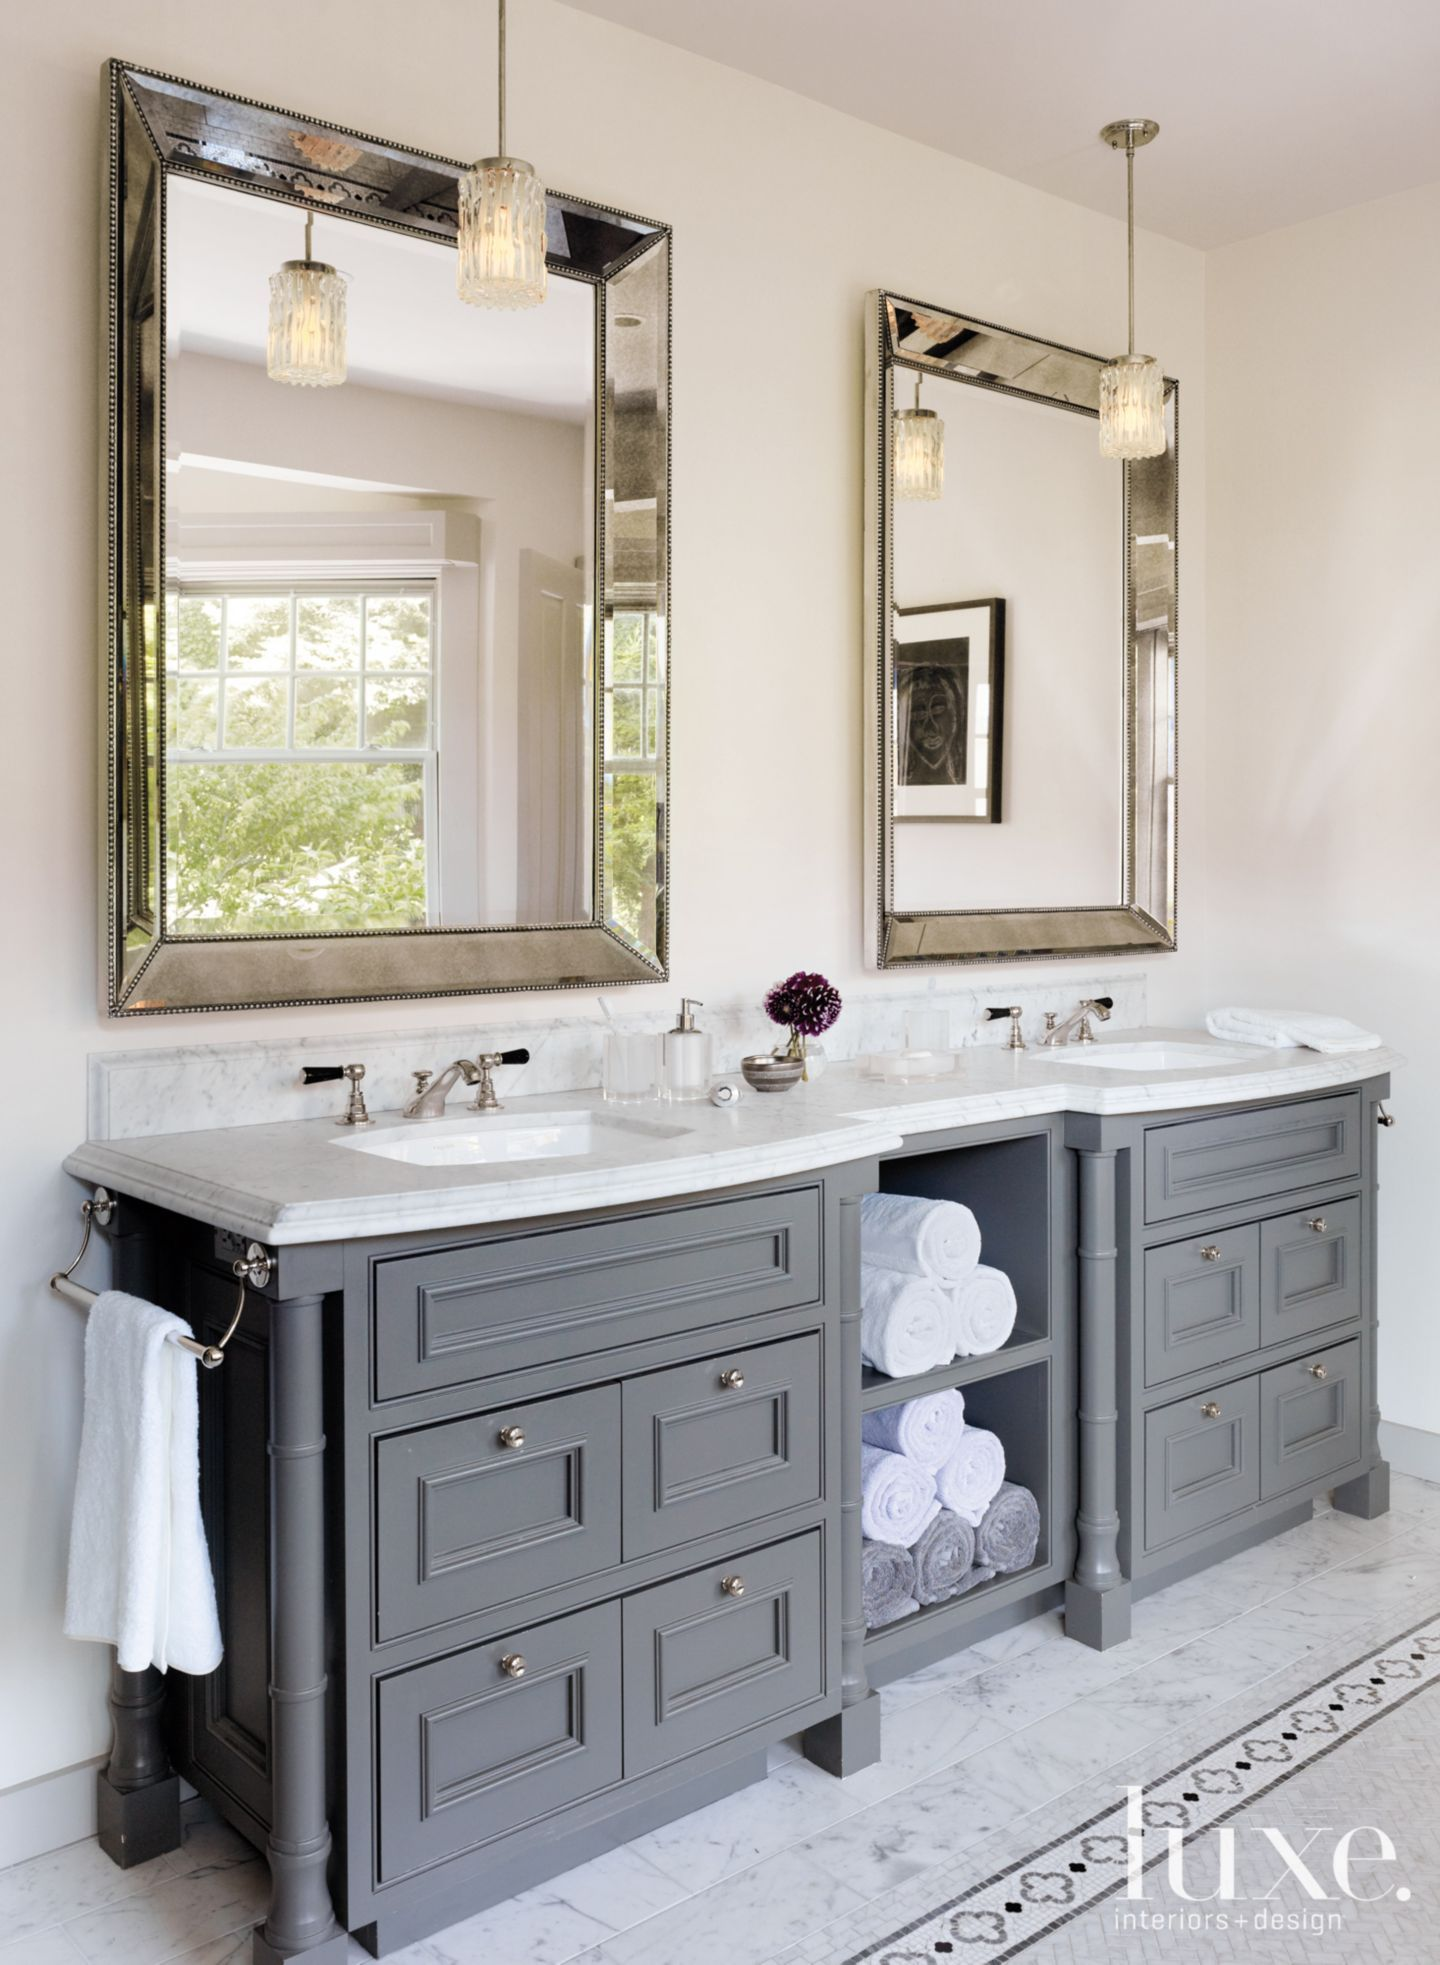 In The Master Bathroom Rosenfeld Hung A Pair Of Midcentury Nickel And Crystal Pendants From